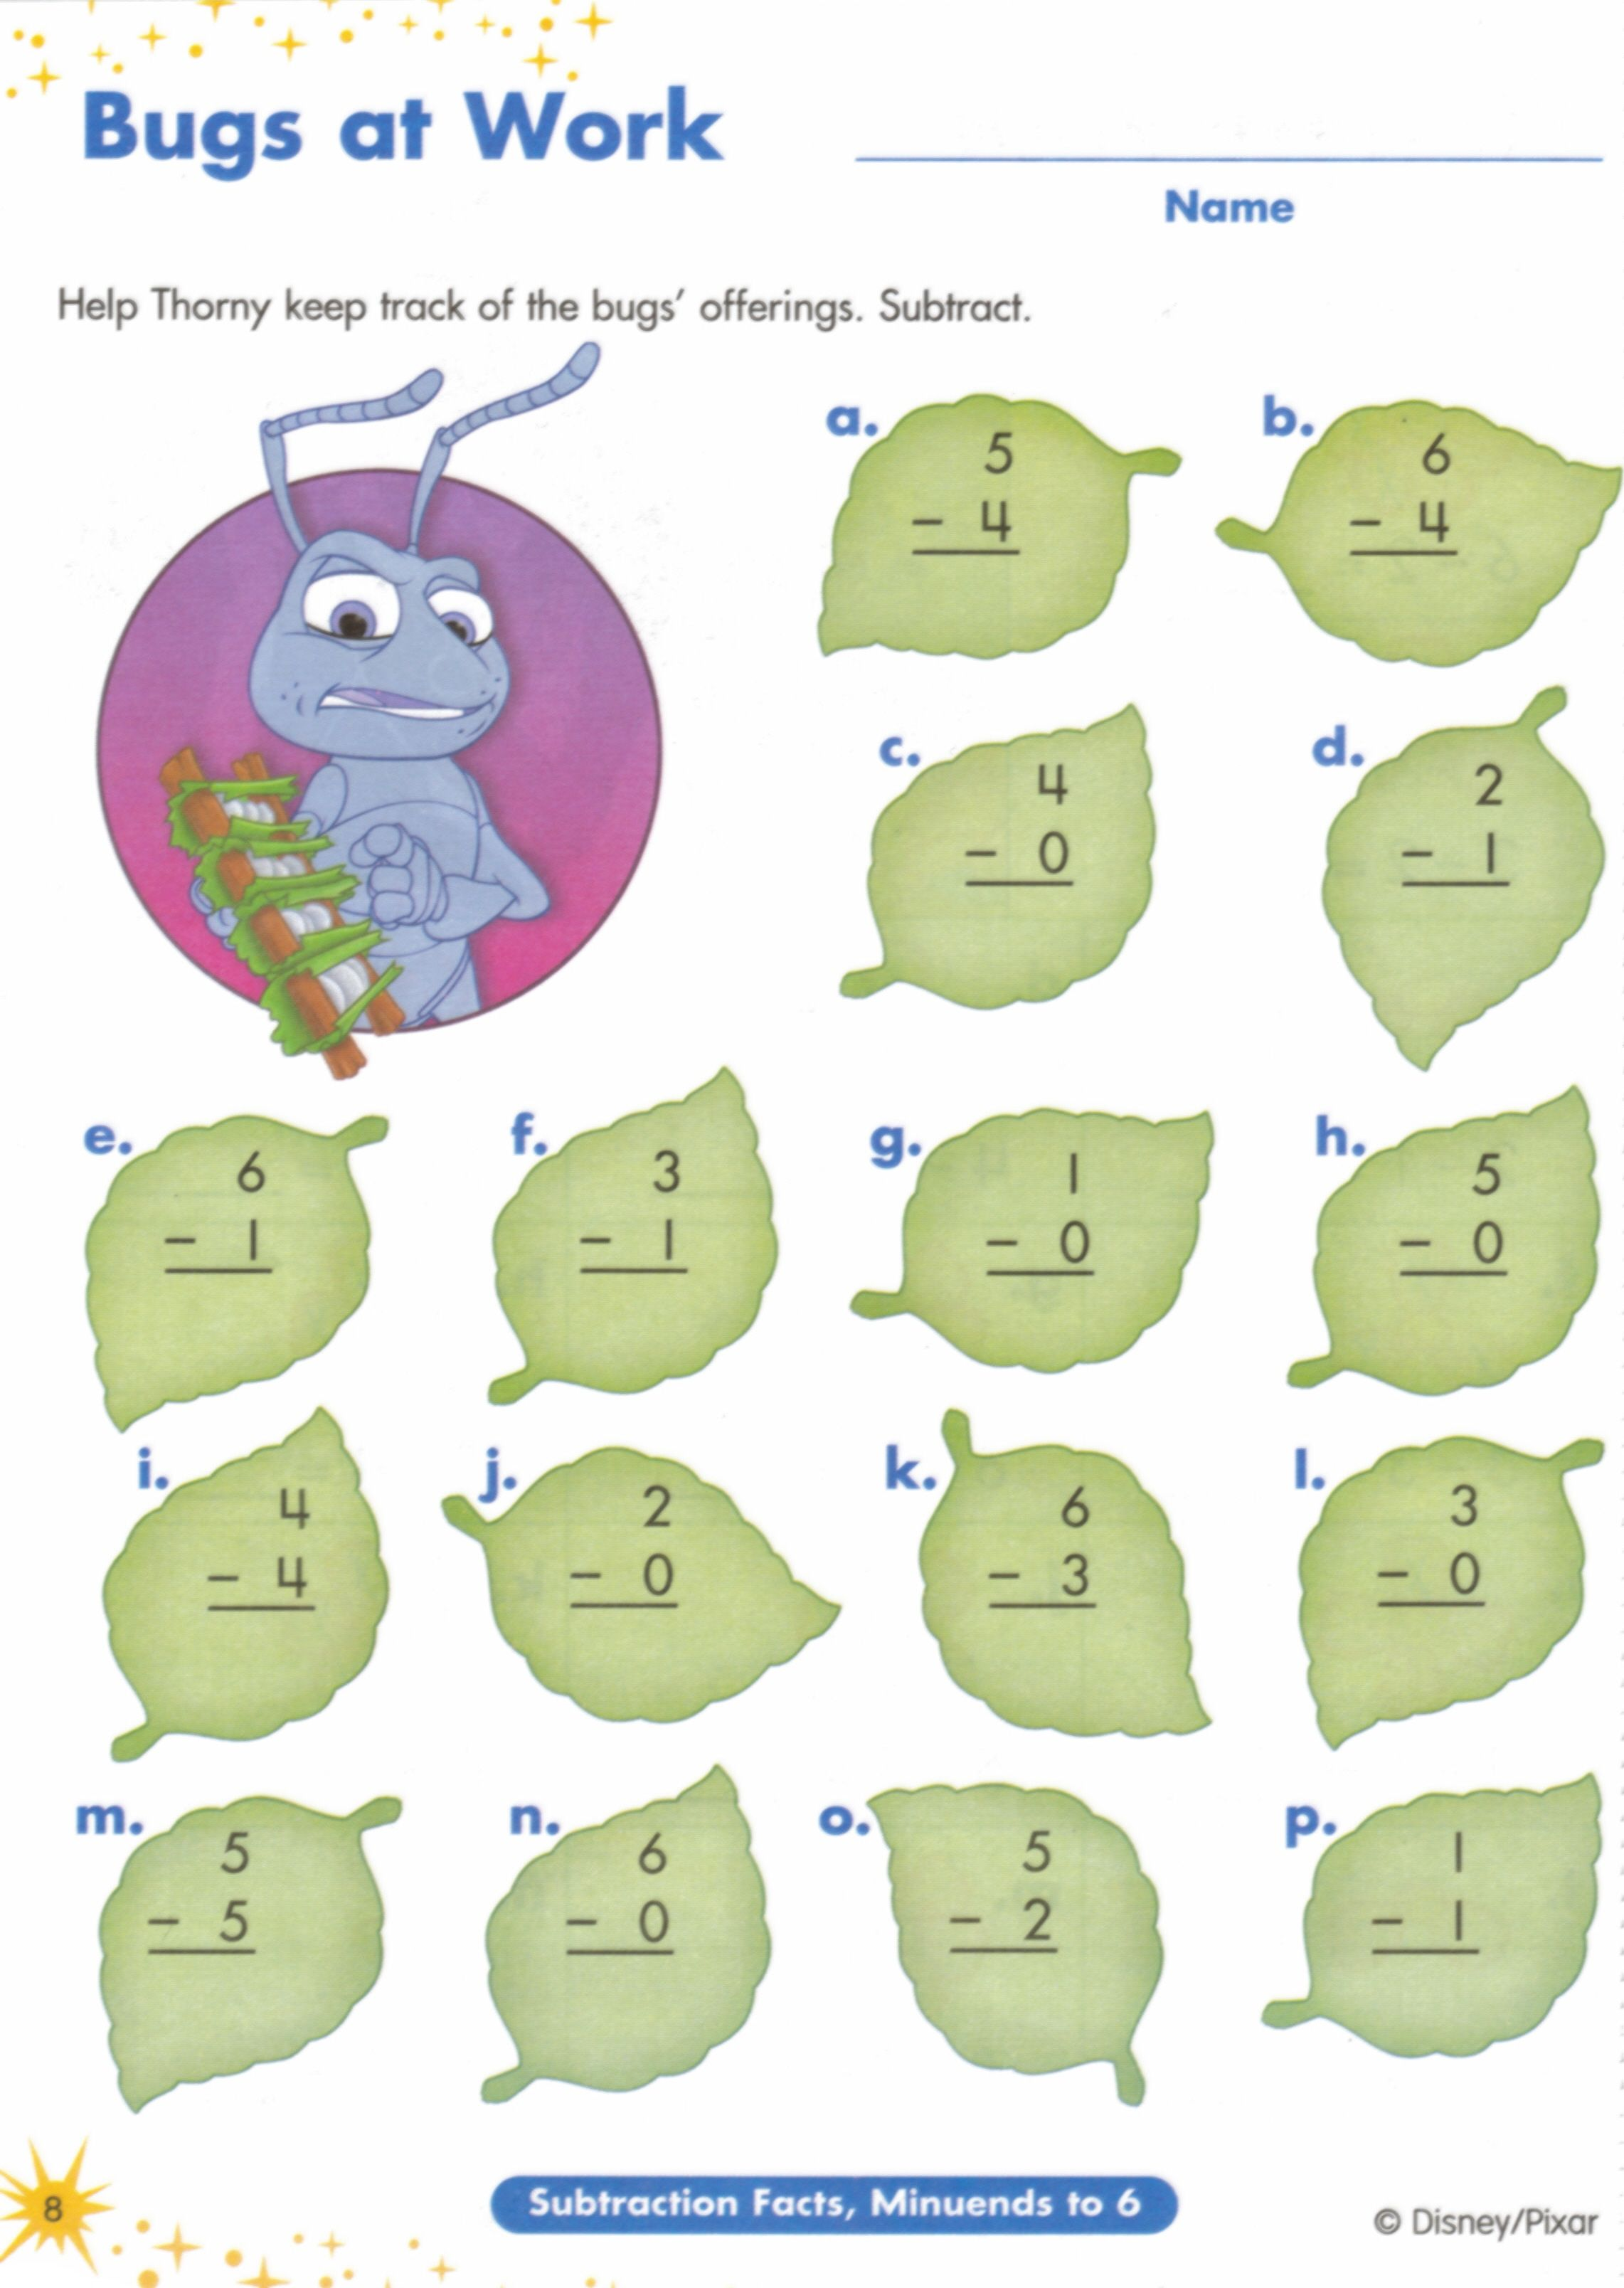 Weirdmailus  Fascinating  Images About Worksheets On Pinterest  Fun Facts For Kids  With Likable  Images About Worksheets On Pinterest  Fun Facts For Kids Earth Day Worksheets And Jungles With Easy On The Eye Neutralization Reactions Worksheet Also Th Grade Fraction Worksheets In Addition Volume Of Prisms And Cylinders Worksheet And Complete Sentence Worksheets As Well As Writing Equations From Word Problems Worksheet Additionally Free Language Arts Worksheets From Pinterestcom With Weirdmailus  Likable  Images About Worksheets On Pinterest  Fun Facts For Kids  With Easy On The Eye  Images About Worksheets On Pinterest  Fun Facts For Kids Earth Day Worksheets And Jungles And Fascinating Neutralization Reactions Worksheet Also Th Grade Fraction Worksheets In Addition Volume Of Prisms And Cylinders Worksheet From Pinterestcom